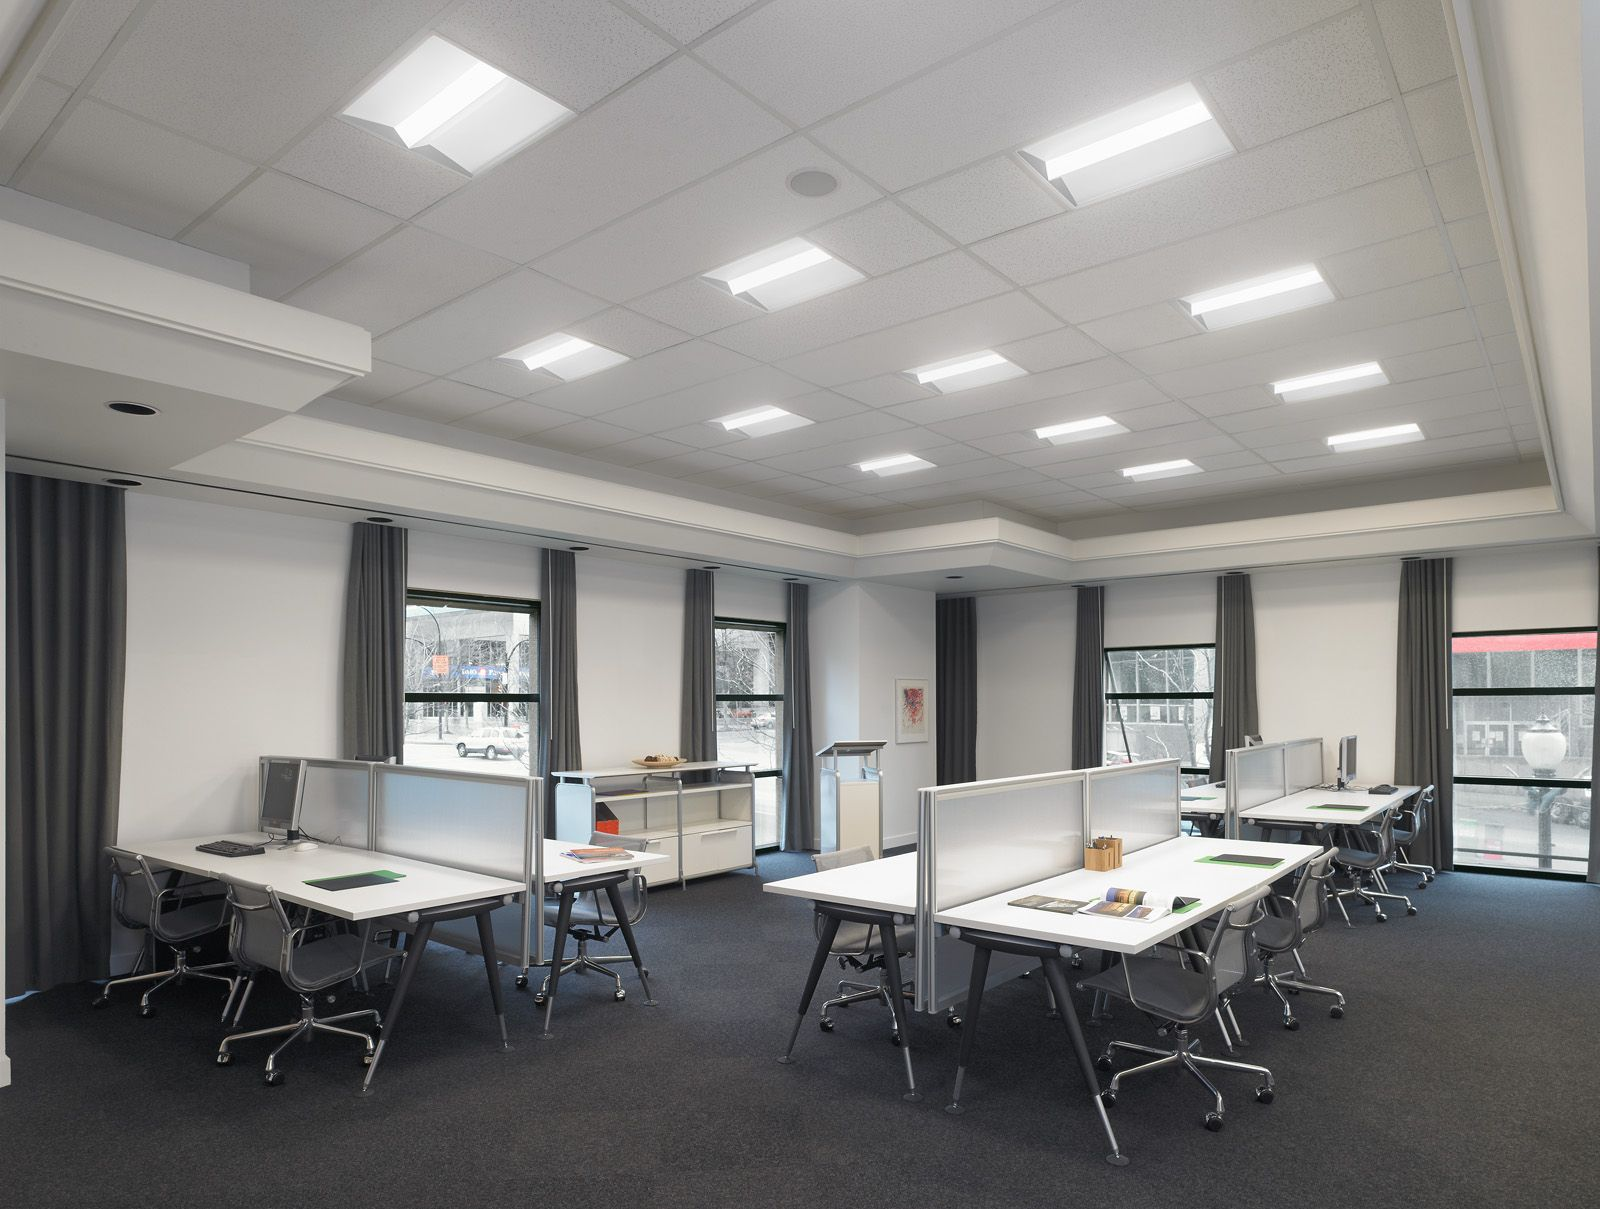 9a3195cd4f0 Alcon Lighting 14002 Elite Architectural LED 2x4 Recessed Center Basket  Perforated Direct Light Troffer